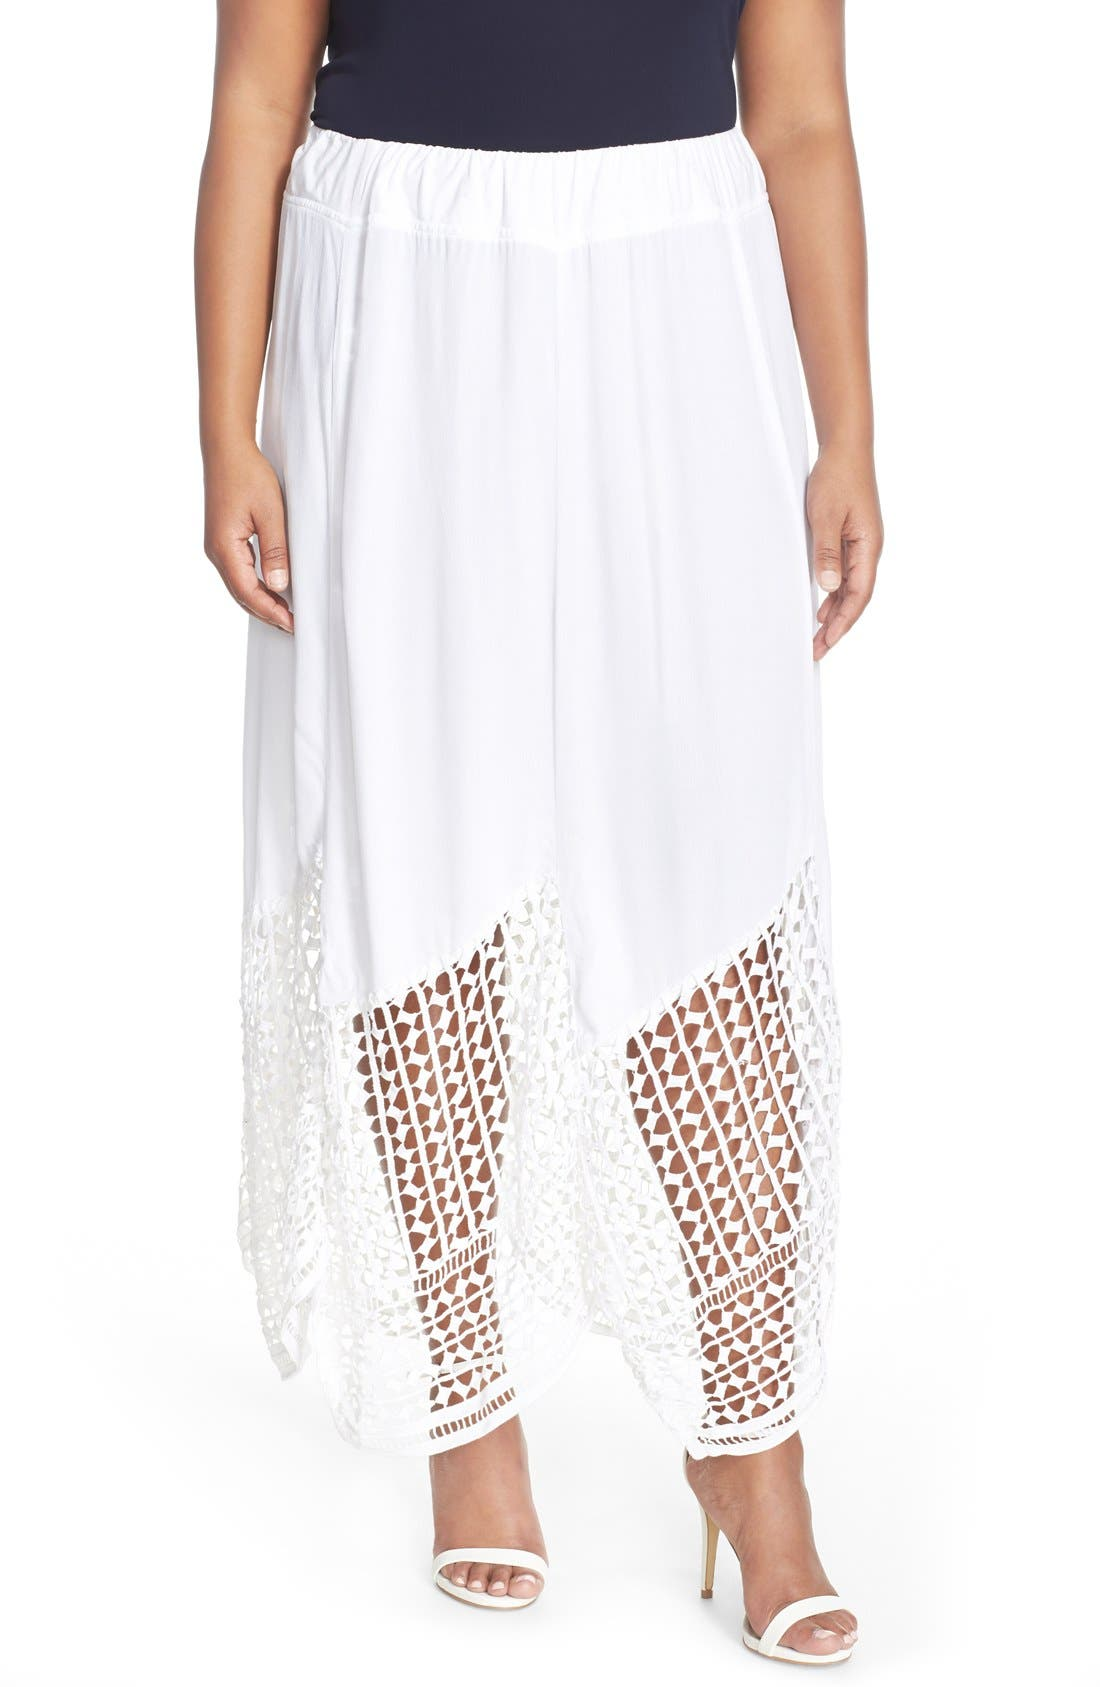 Alternate Image 1 Selected - XCVI Wearables 'Lauryn' Lace Border Midi Skirt (Plus Size)